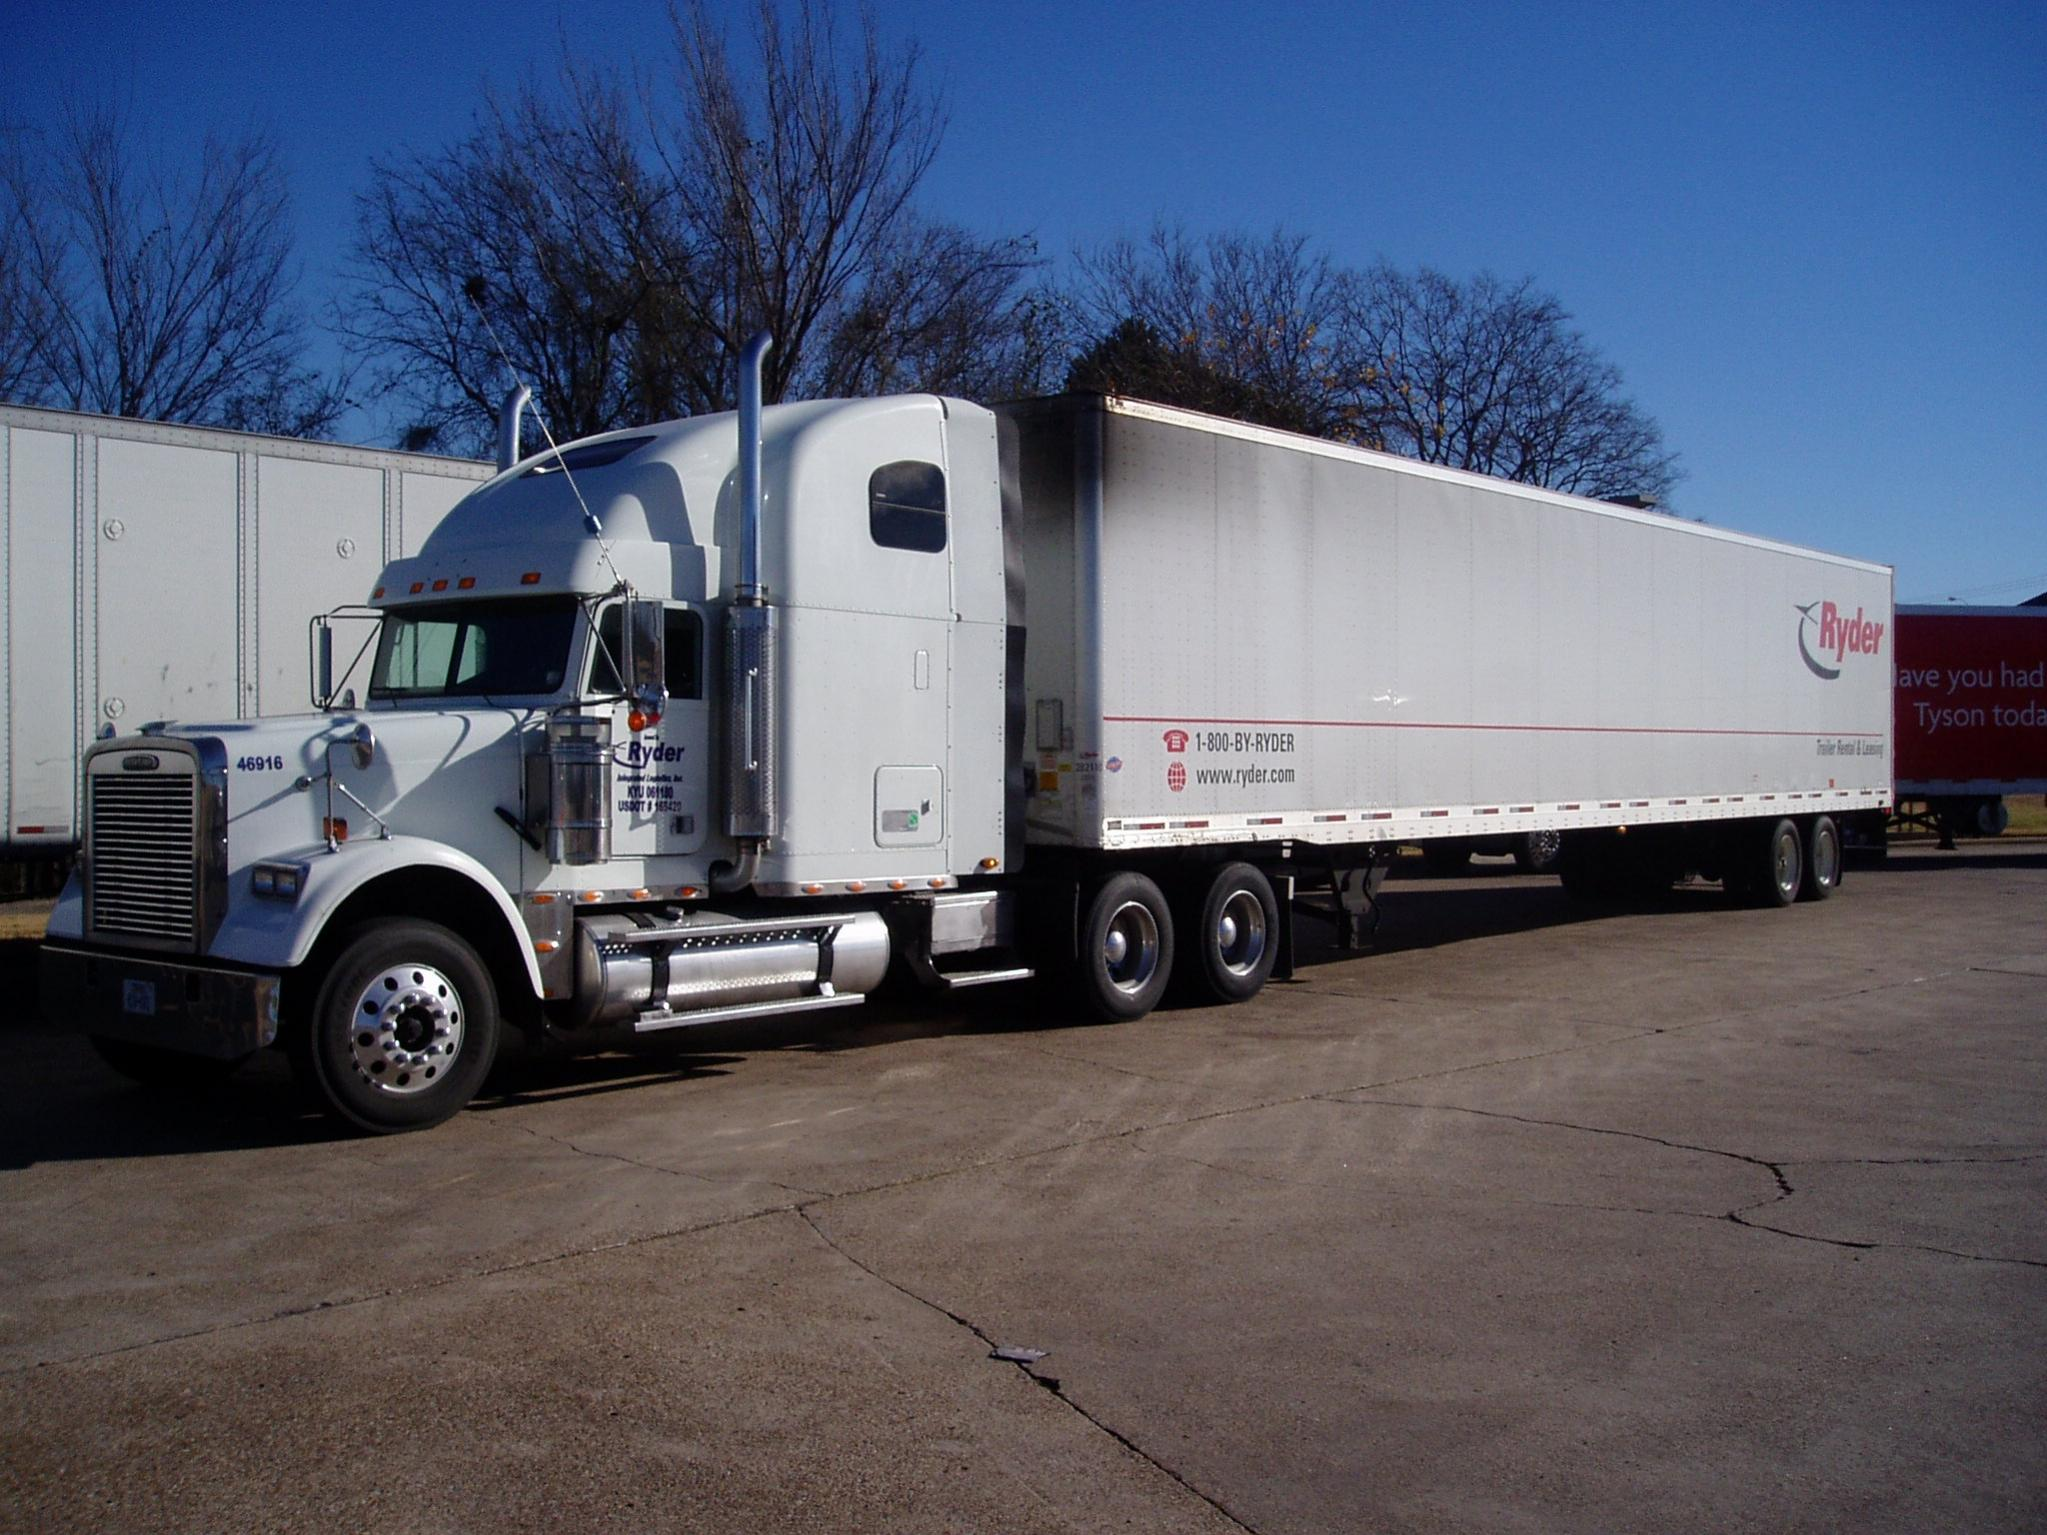 Click image for larger version  Name:ryder truck.jpg Views:61 Size:364.1 KB ID:19724